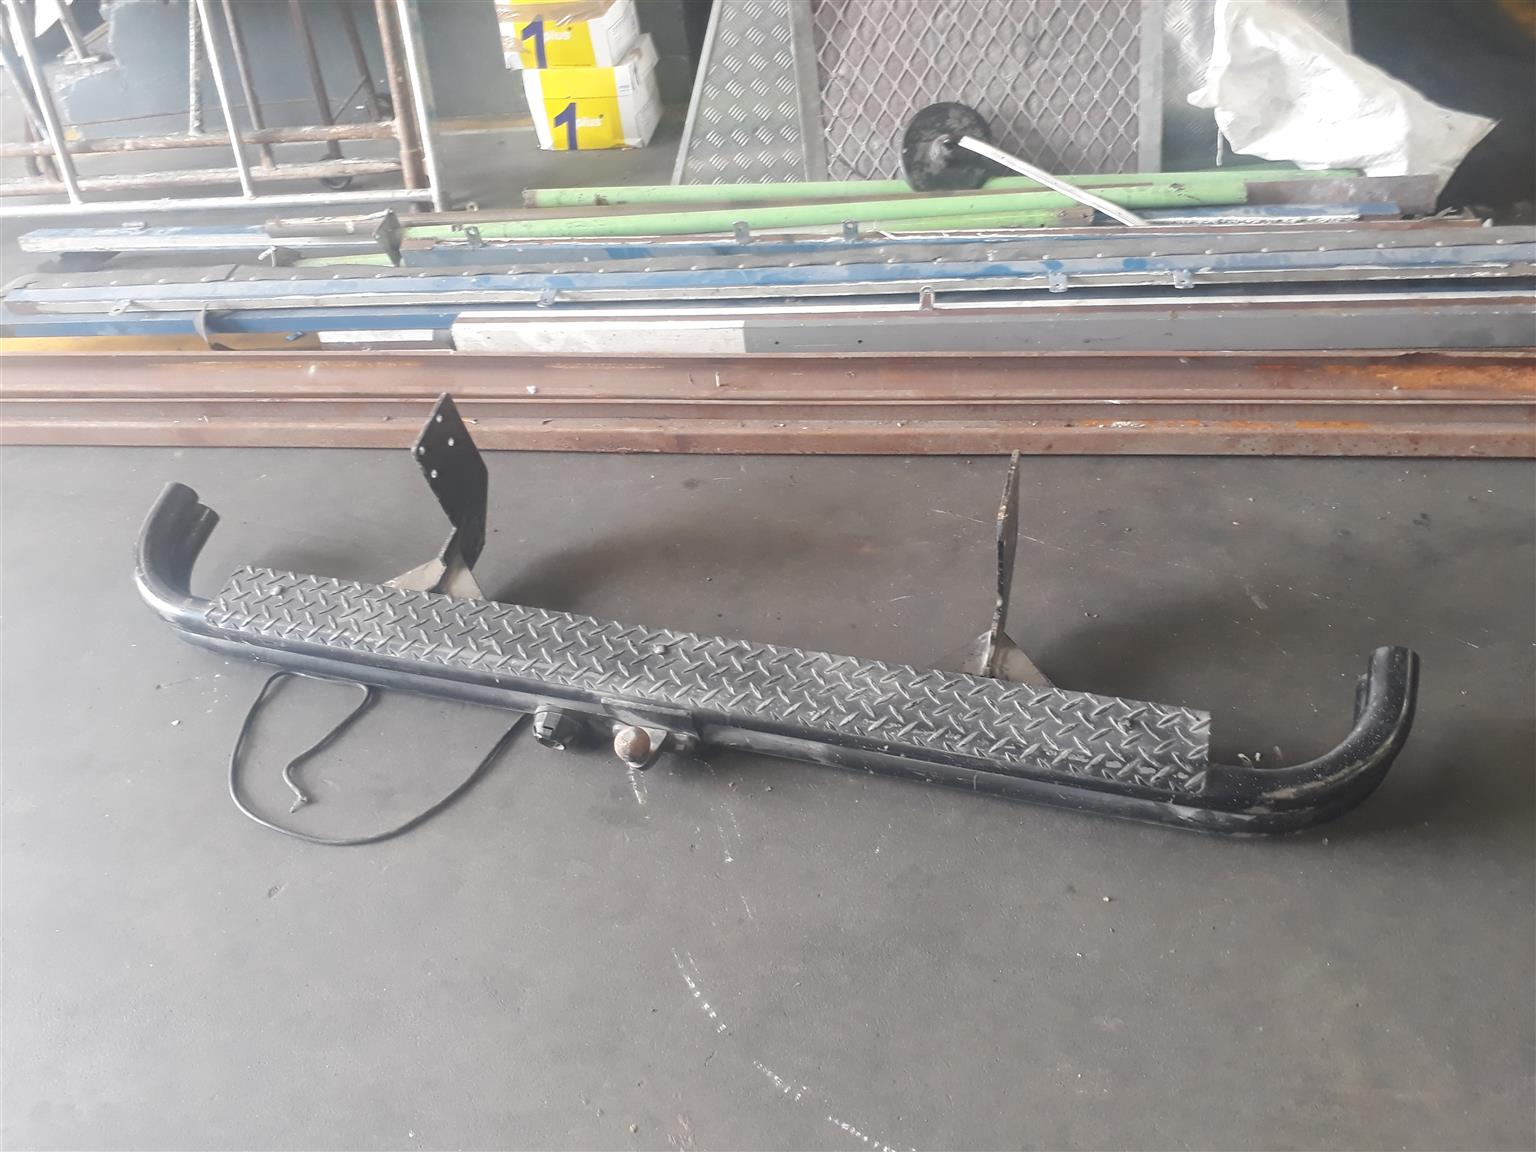 nudge bars and tow bars